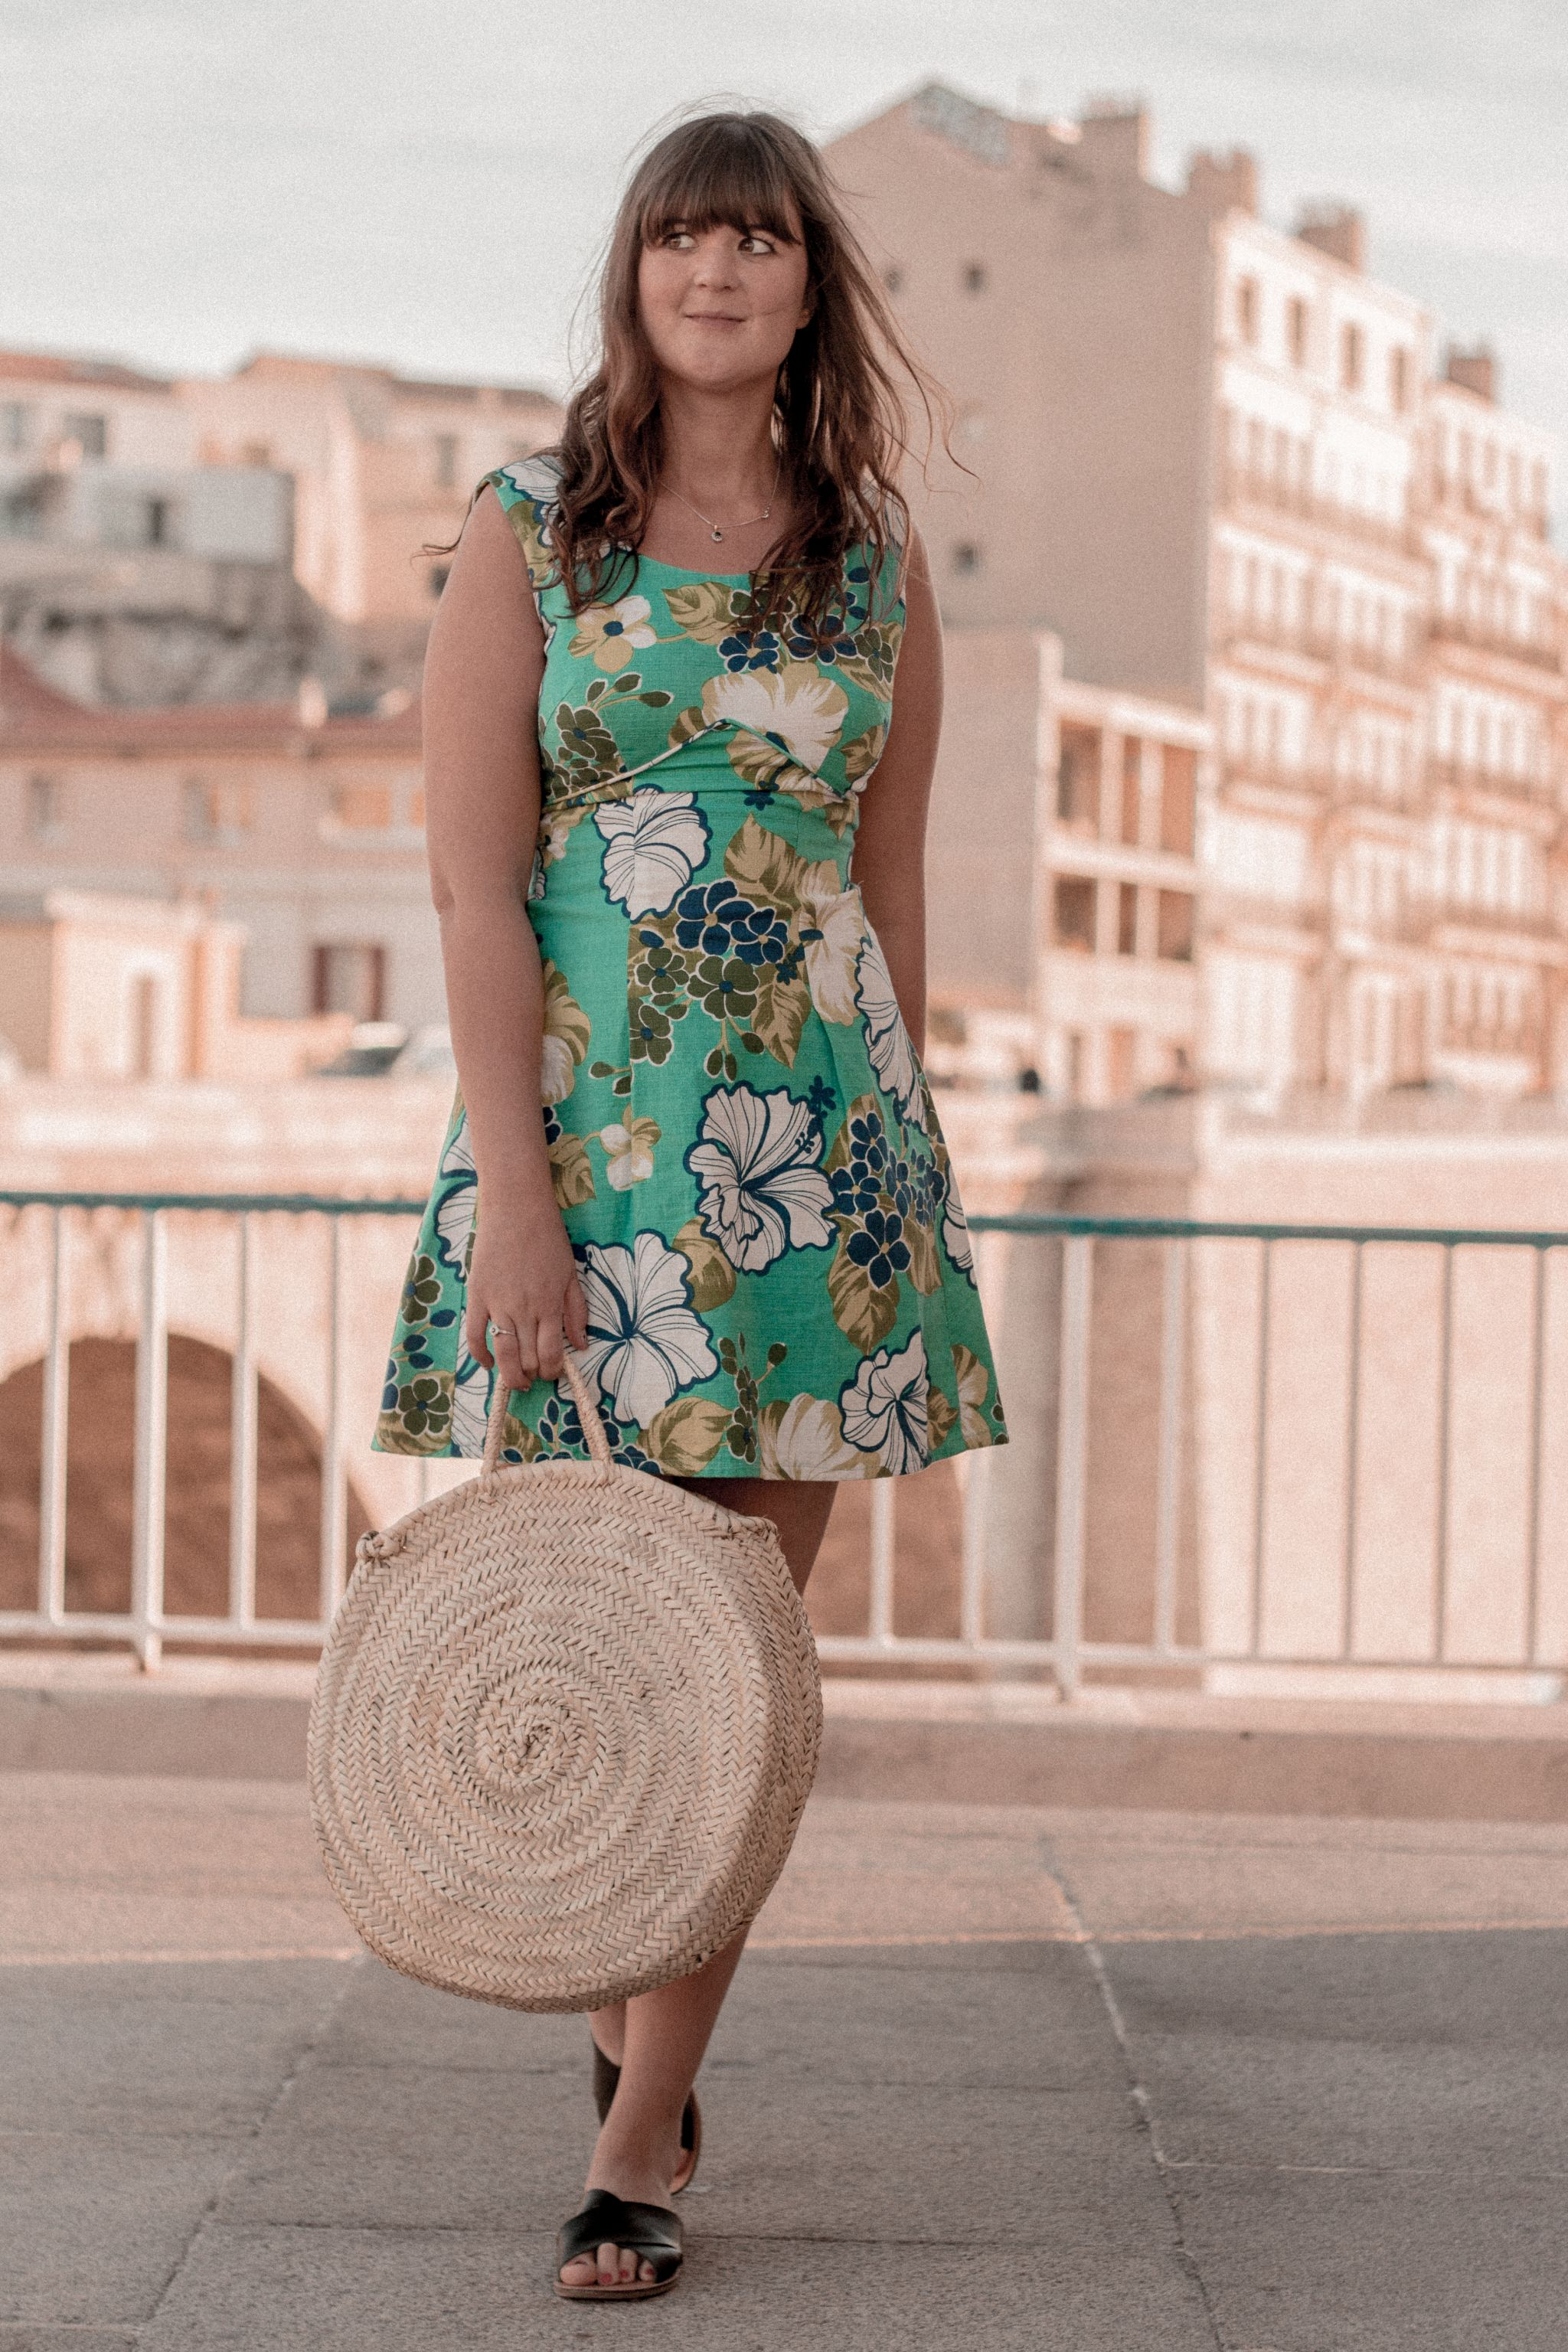 marseille-vintage-rokit-dress-60s